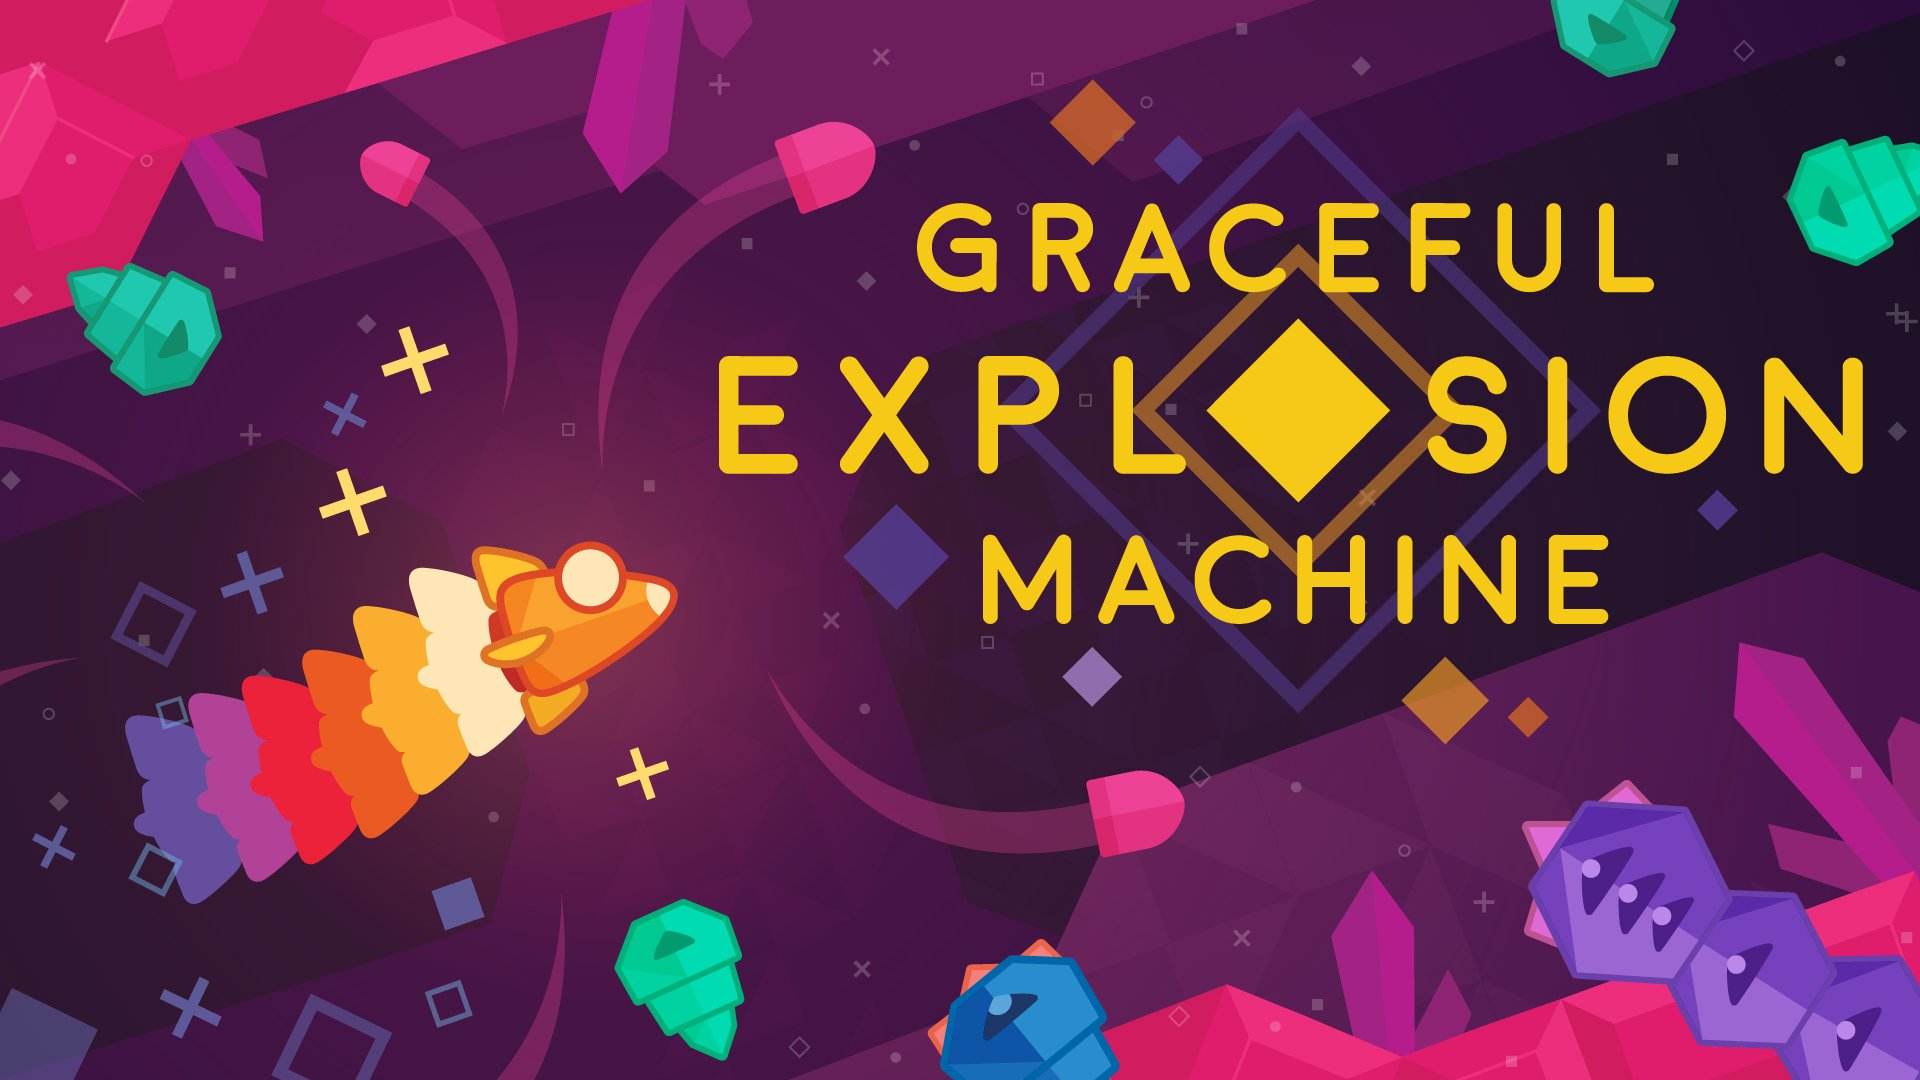 Graceful Explosion Machine – Una navicella solitaria nello spazio